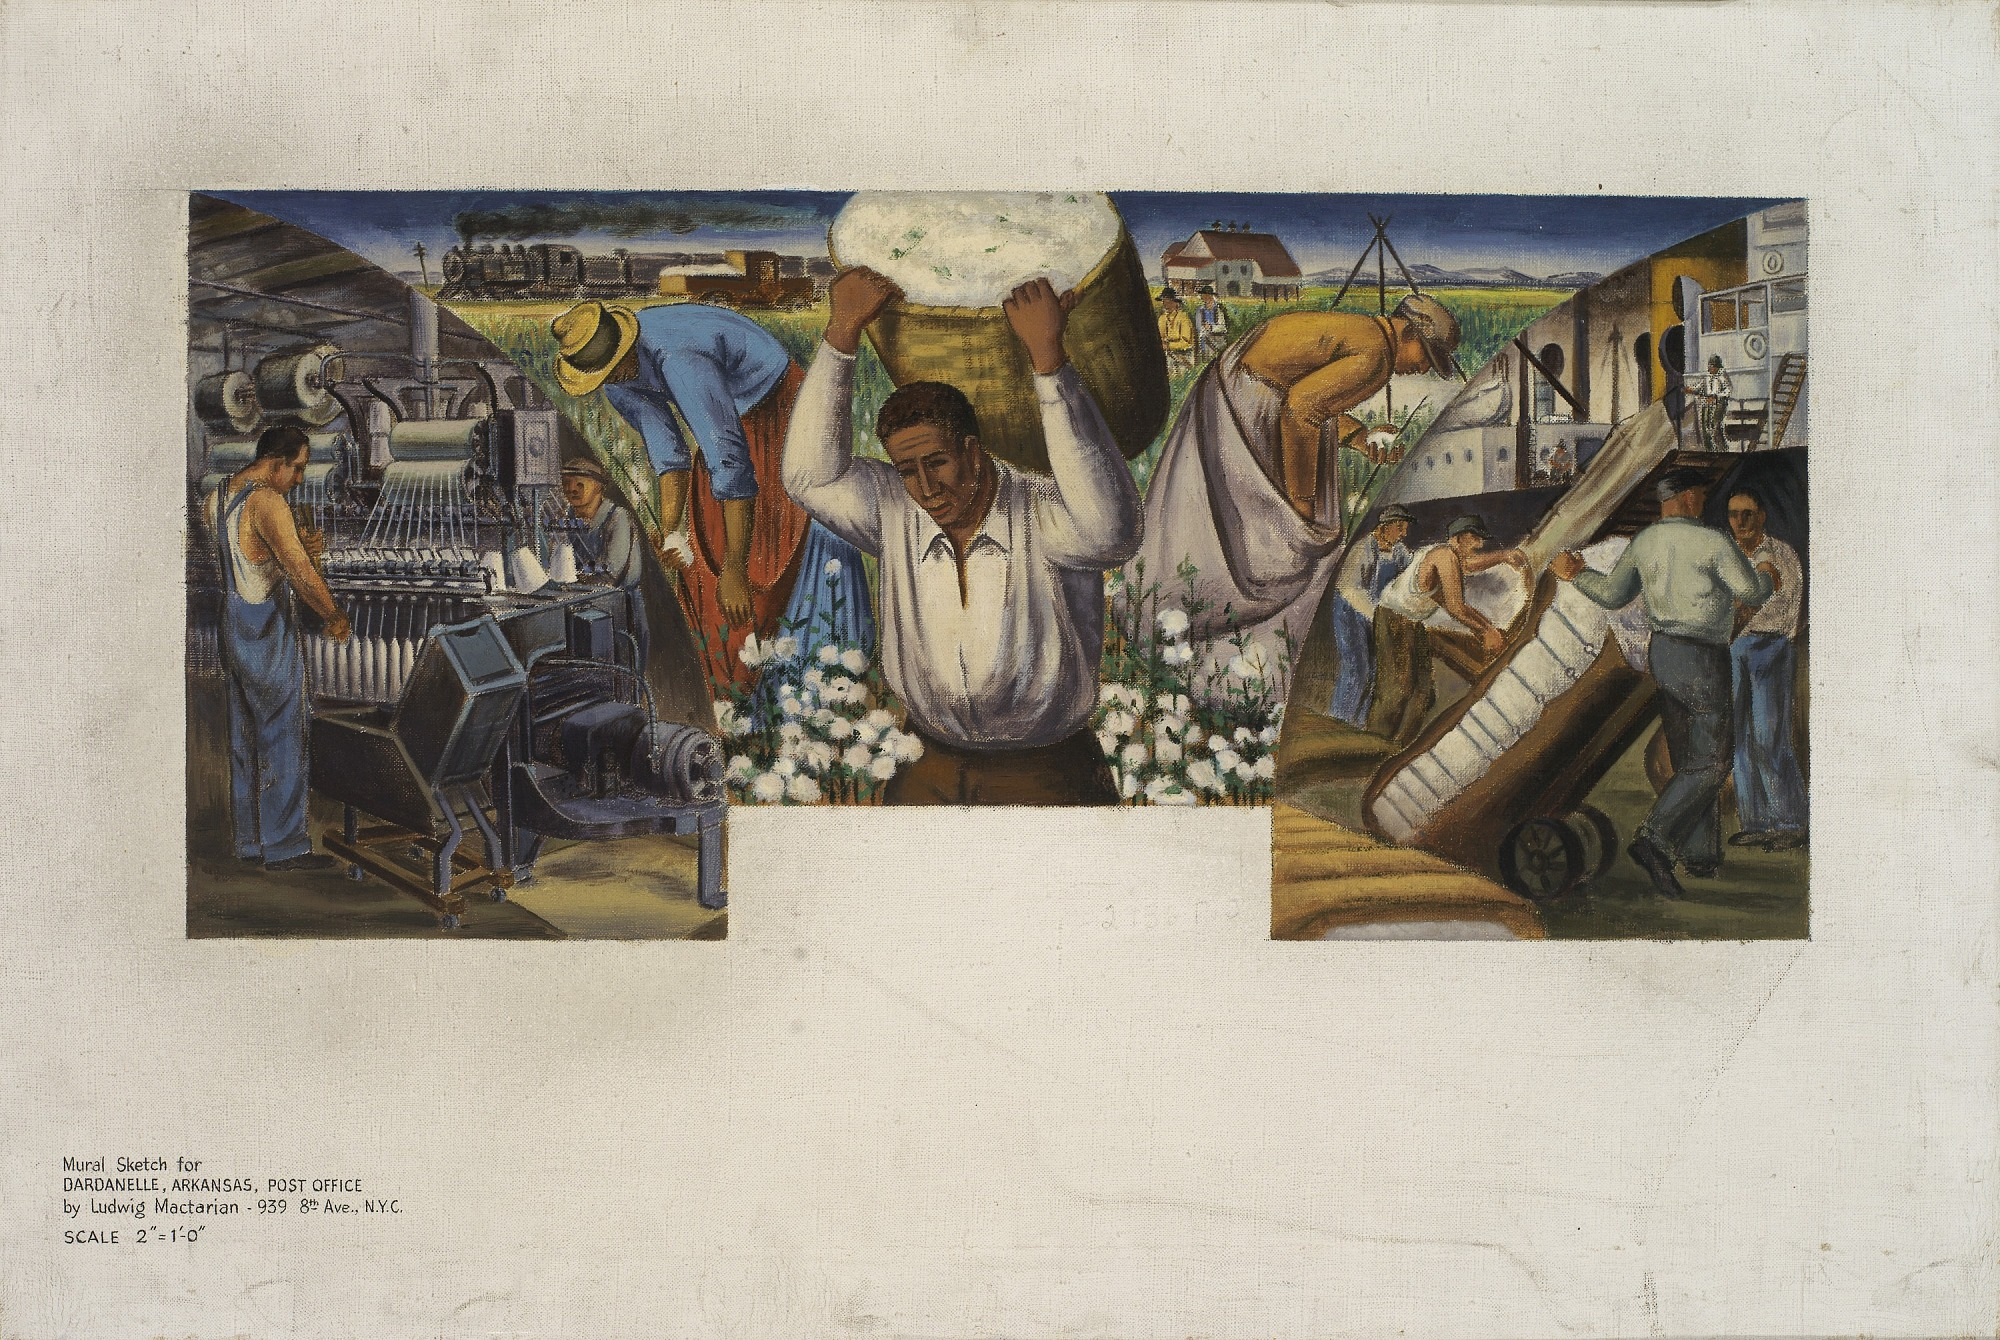 Cotton Growing, Manufacture and Export (mural study, Dardanelle, Arkansas Post Office)